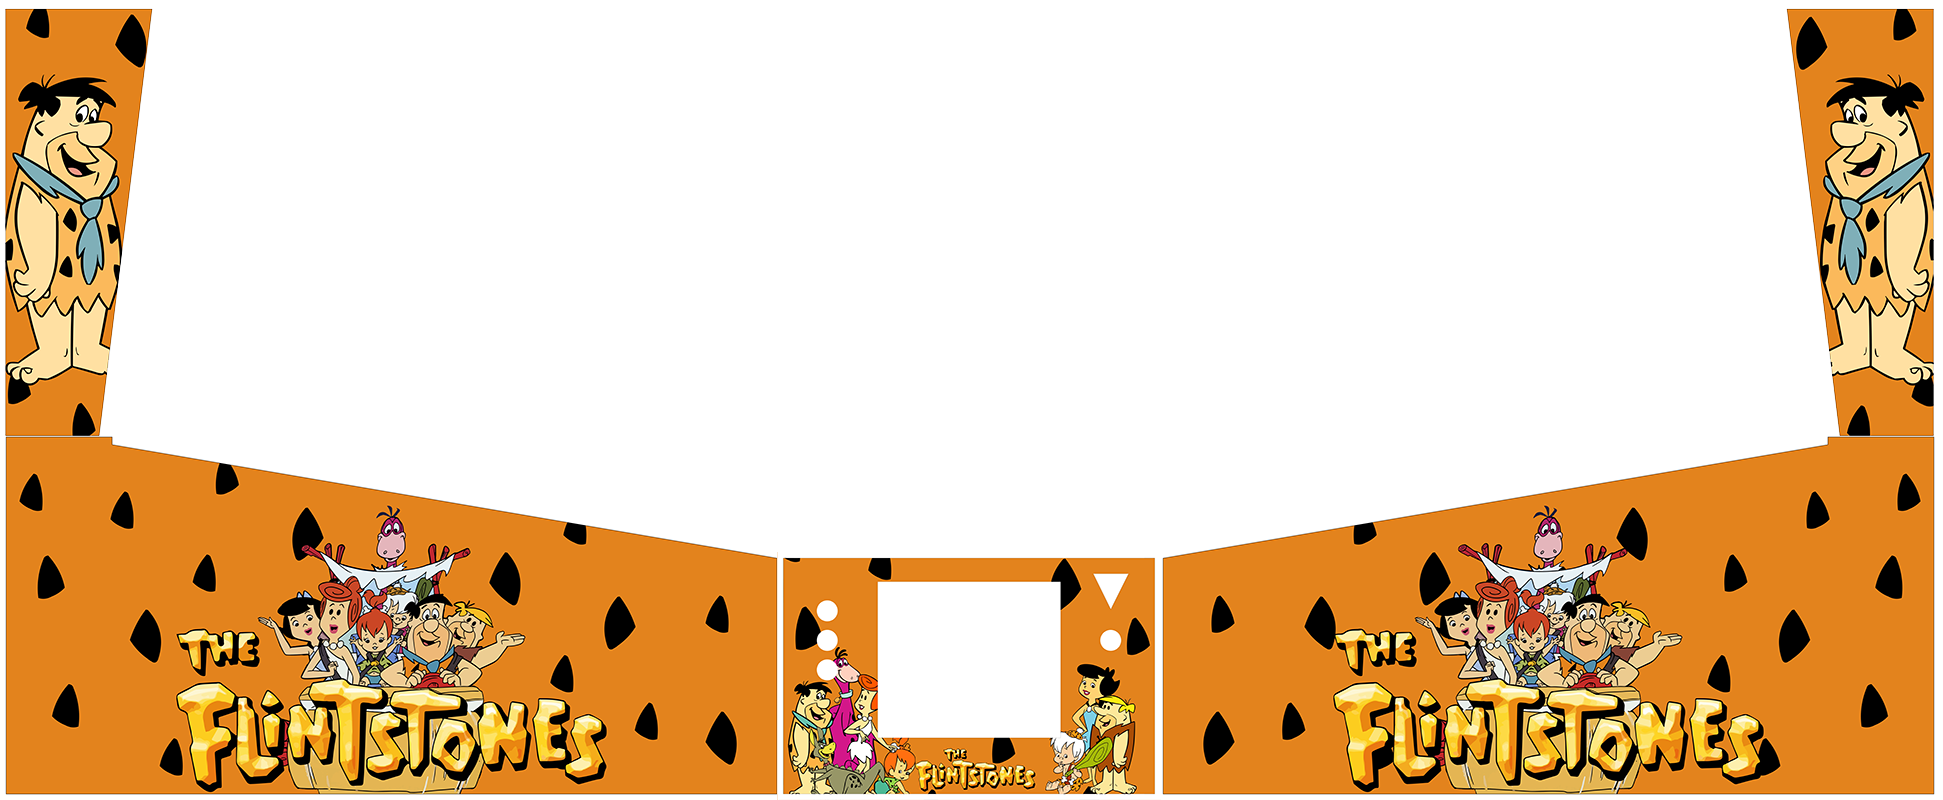 Flintstones Backgrounds Png - Cabinet Artwork I have created - Page 21 - Virtual Pinball ...